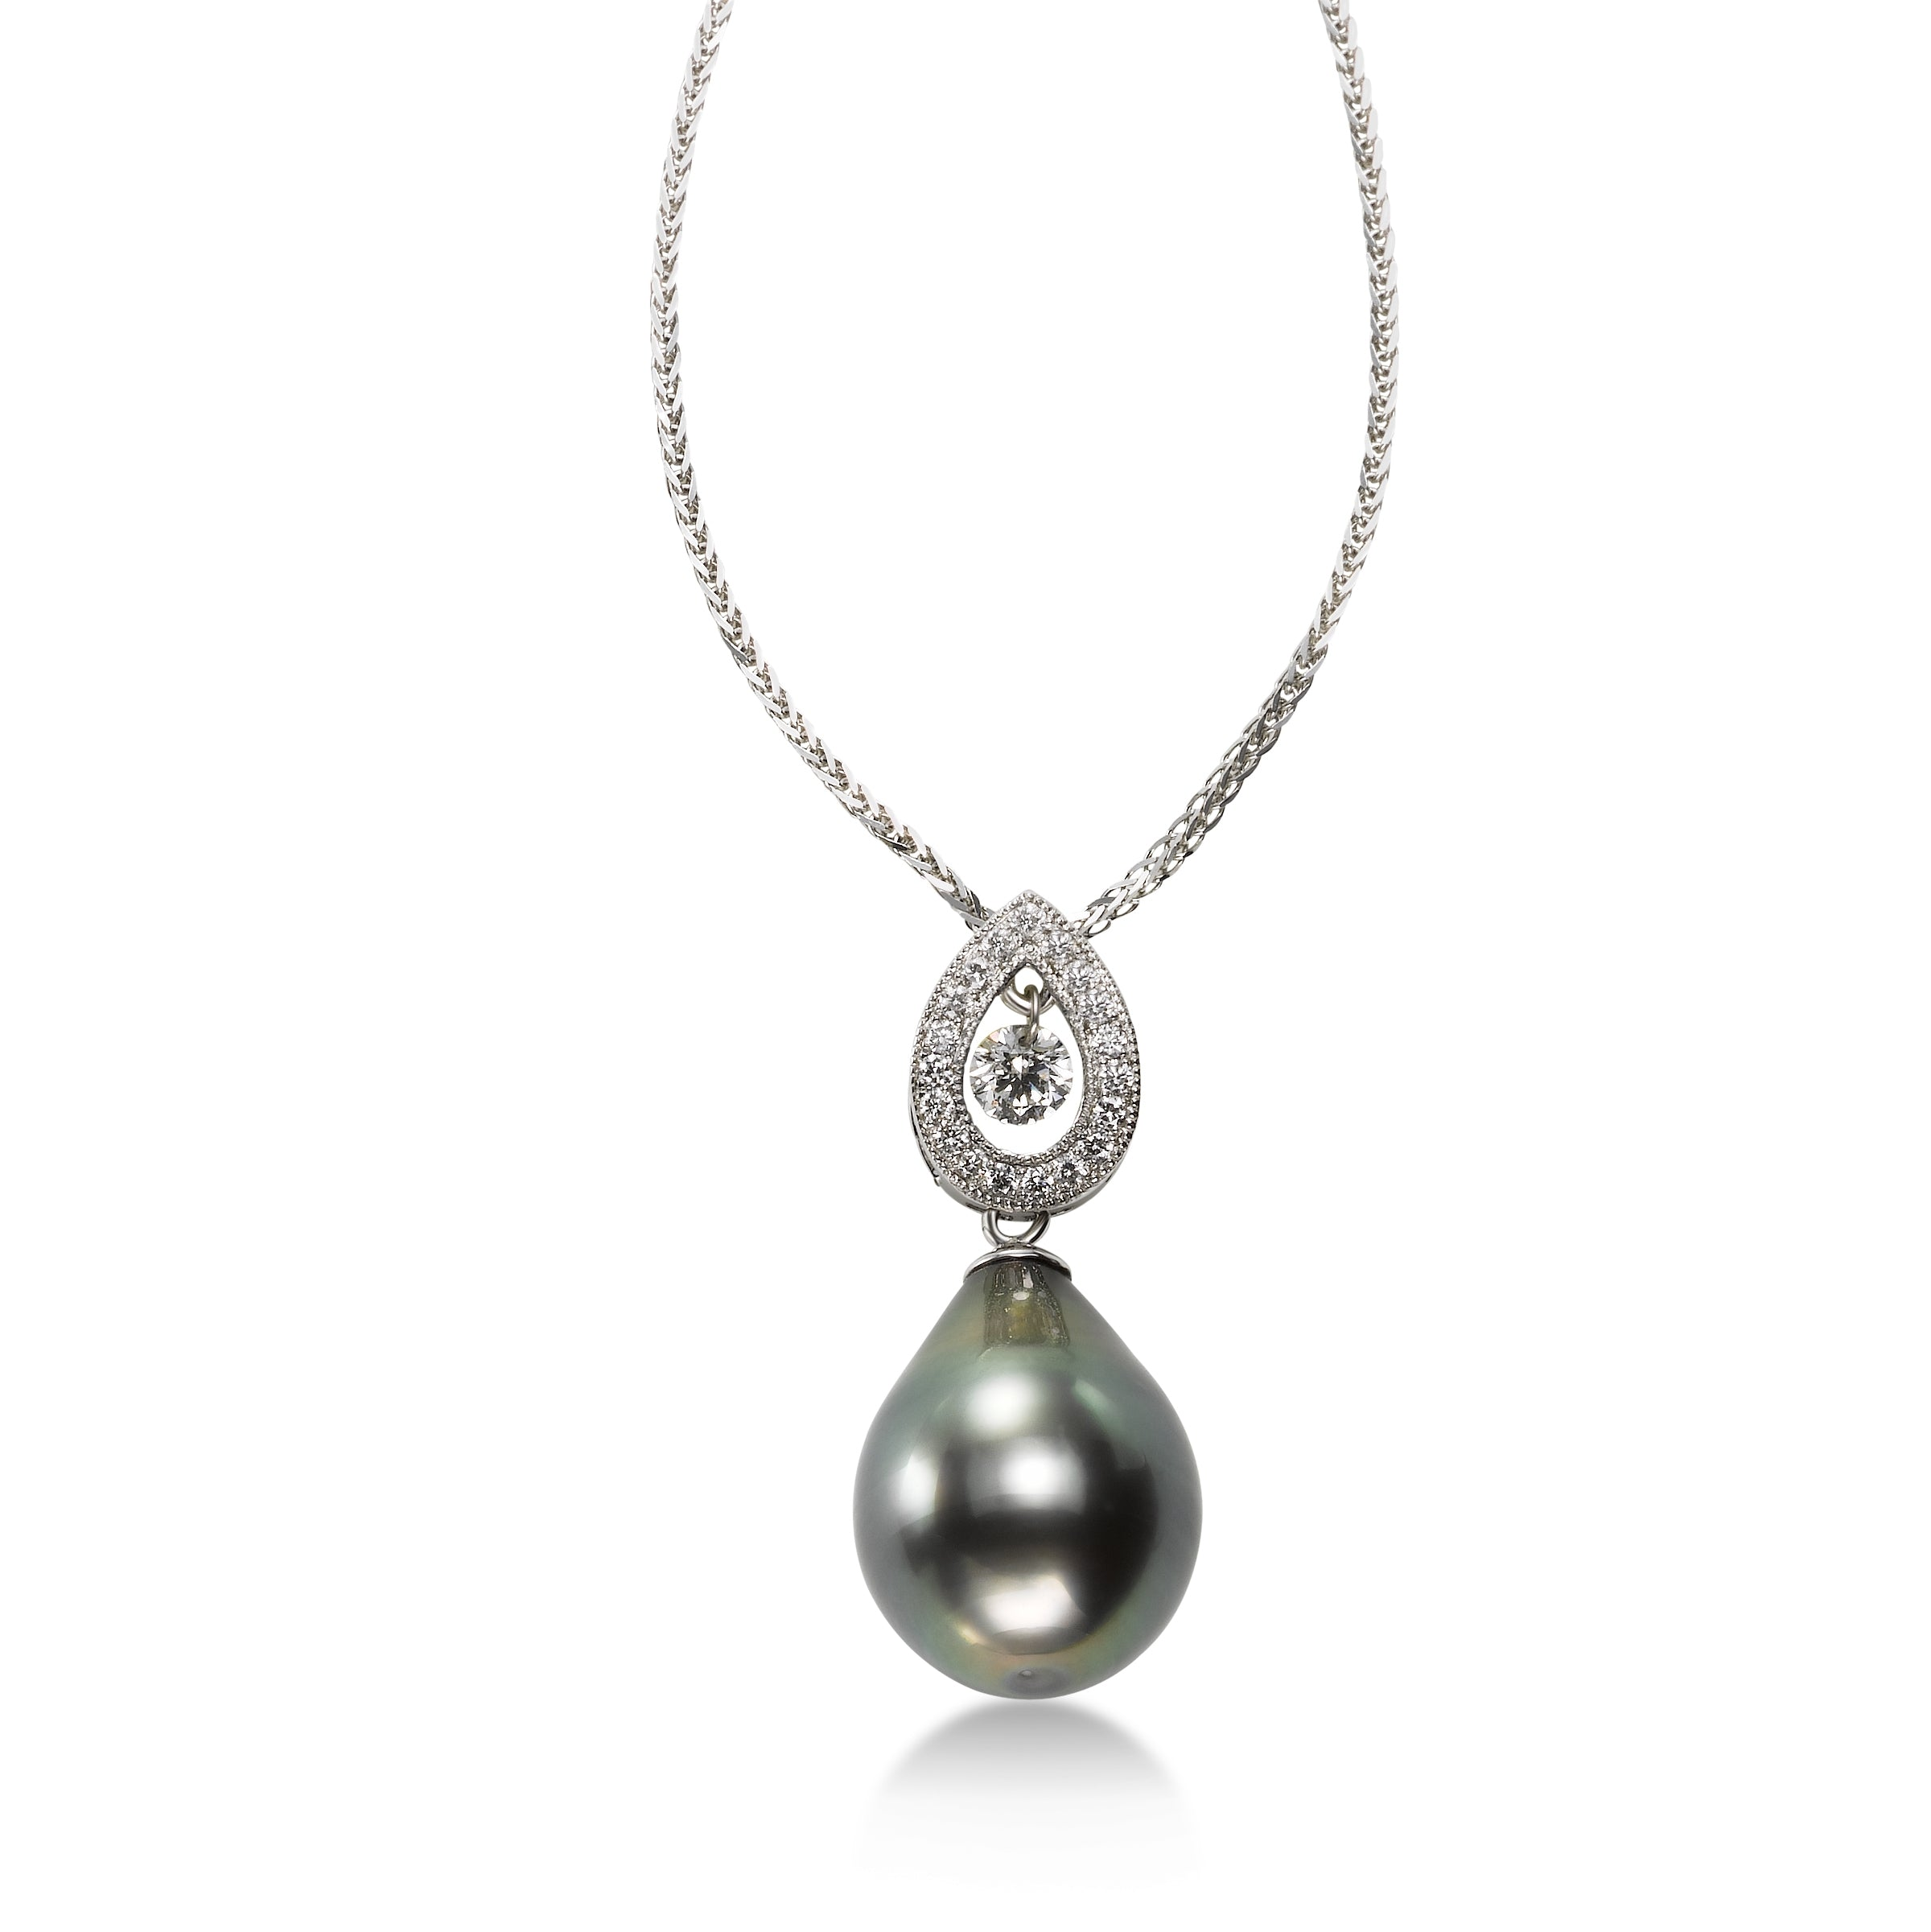 Pear Shape Tahitian Cultured Pearl and Diamond Pendant, 18K White Gold